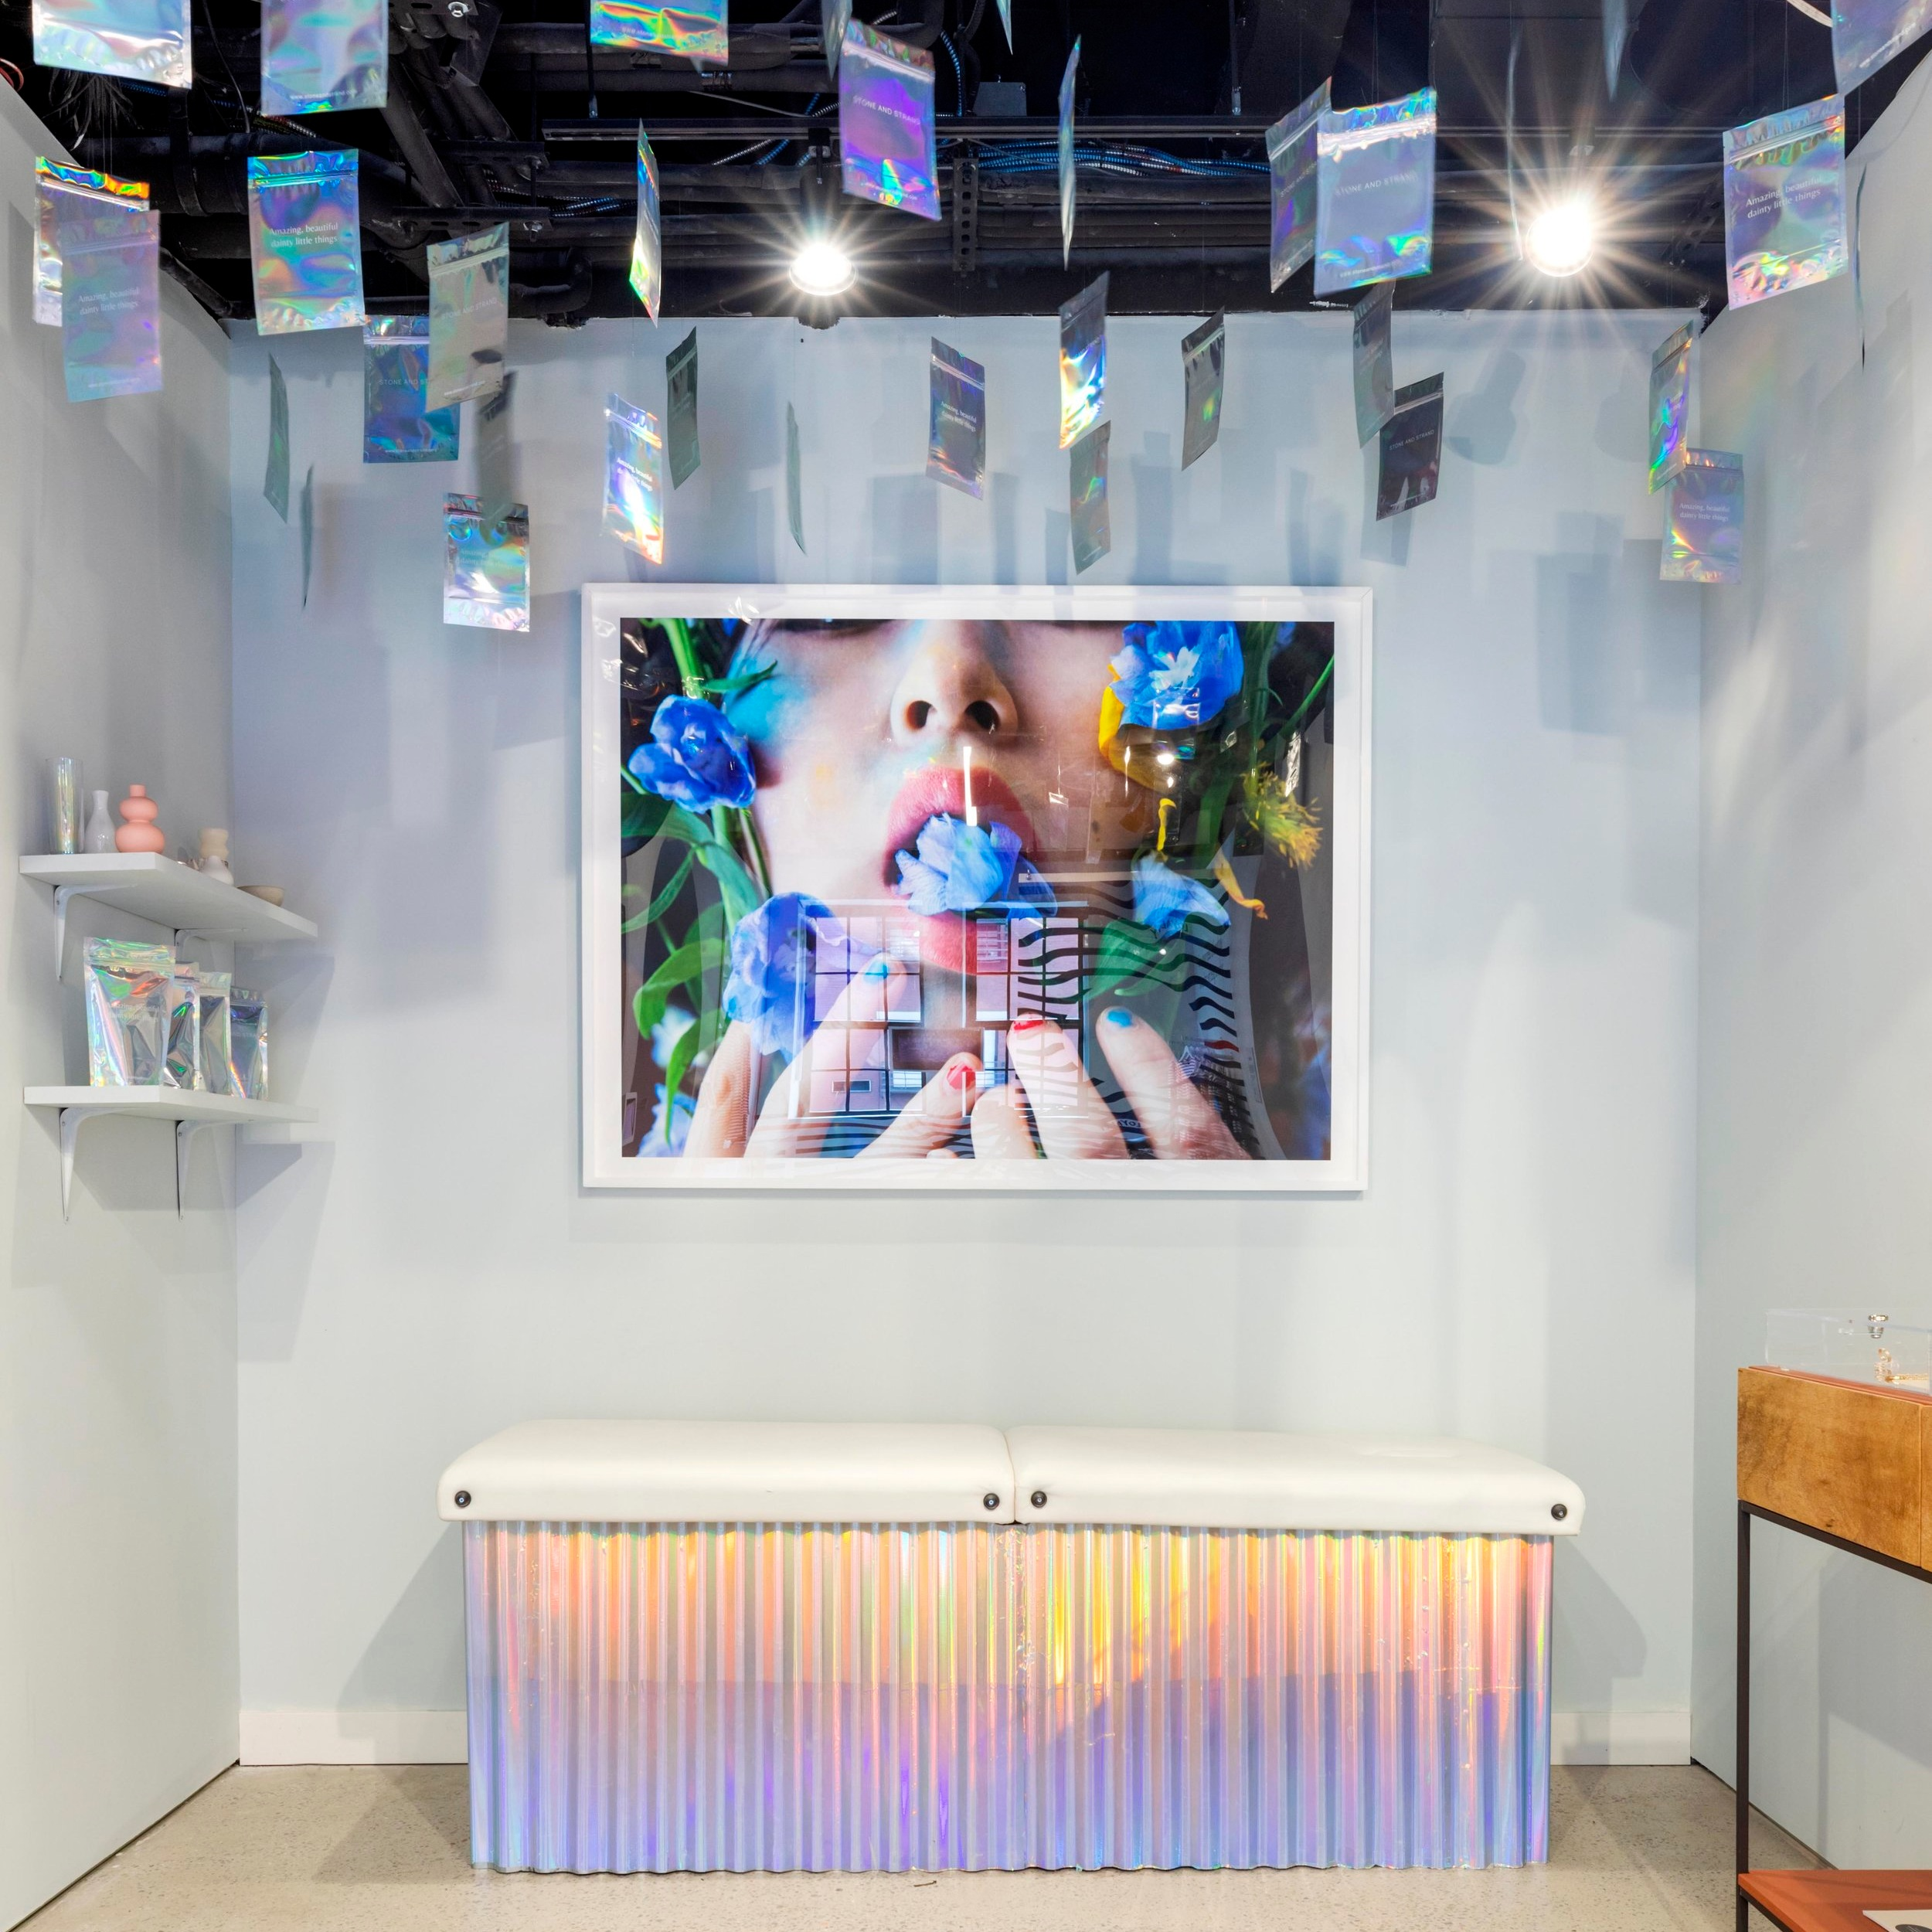 Customized - Each brand in our space has a unique story to tell and conversation to own. We believe in celebrating that individuality through customizable spaces and distinctive storytelling moments.